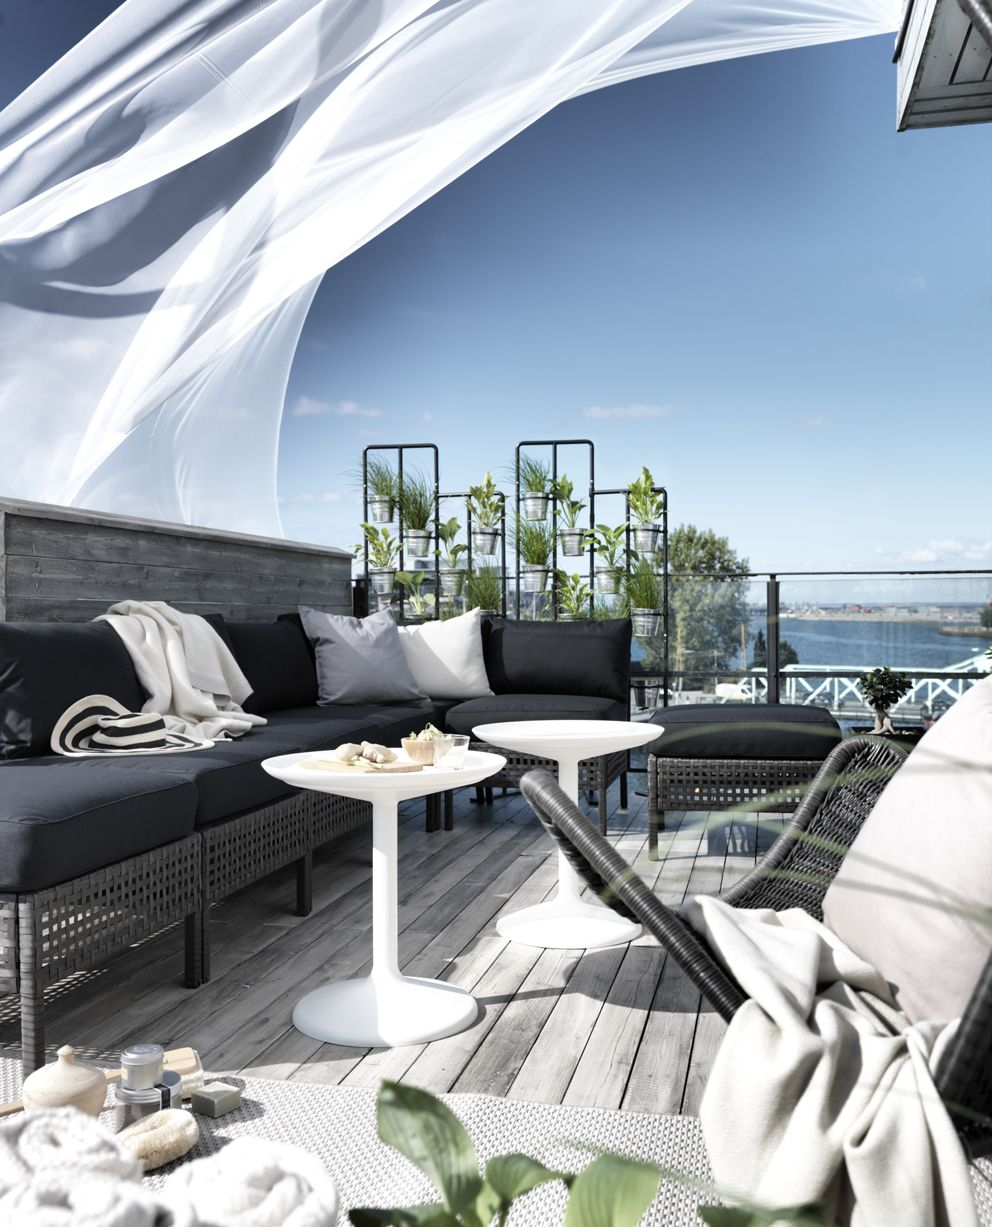 ikeas sommar lounge finrum balcony pinterest. Black Bedroom Furniture Sets. Home Design Ideas